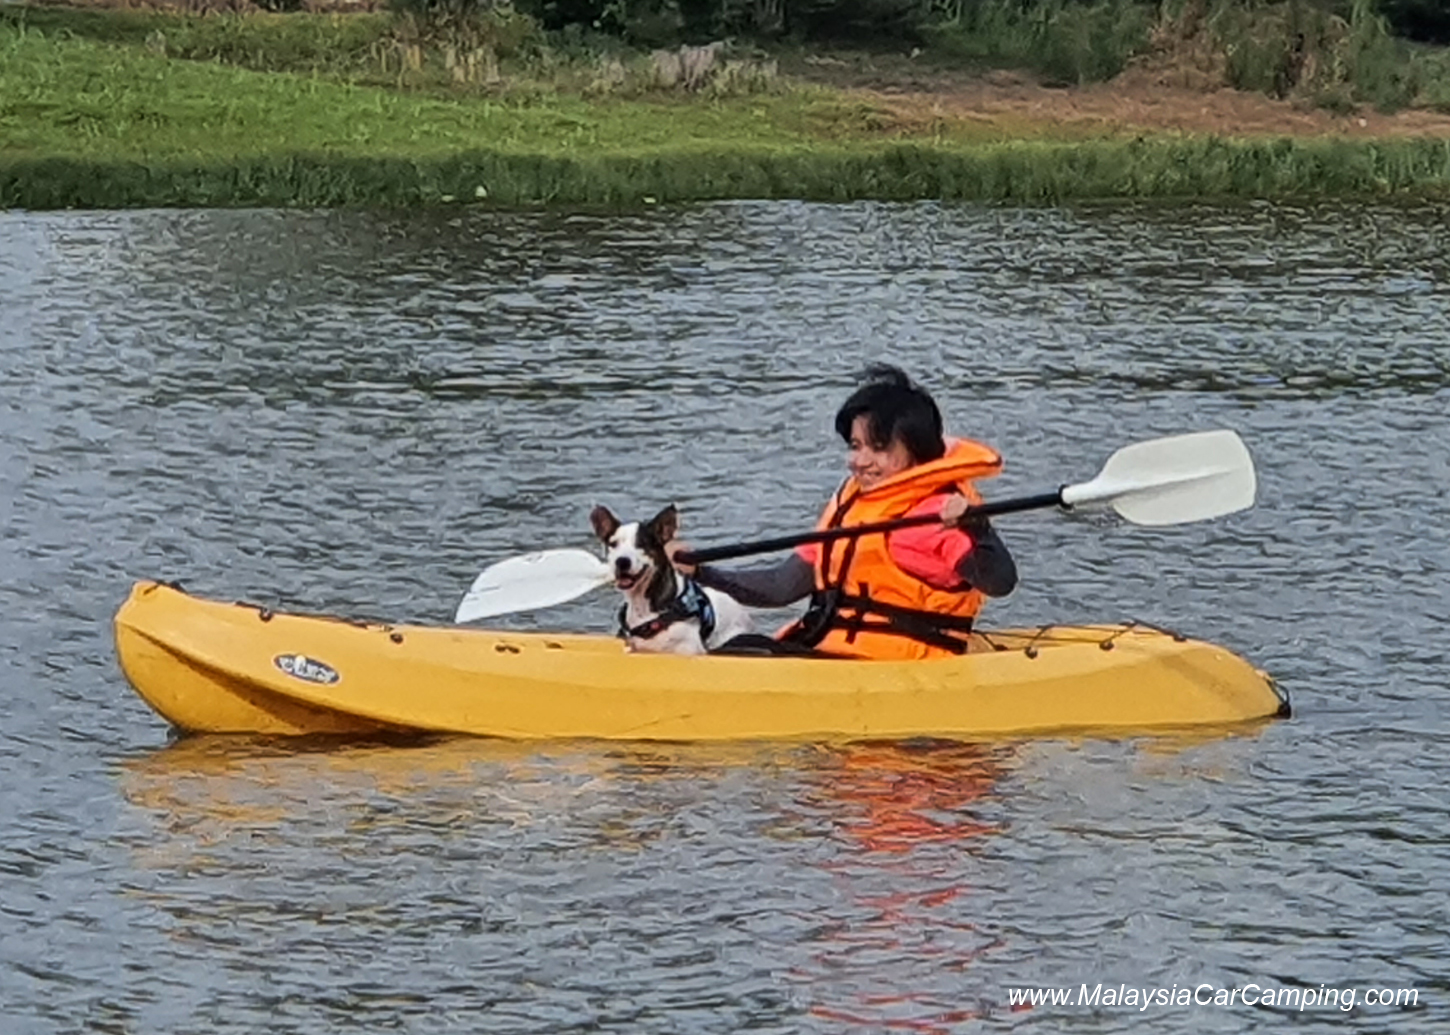 kayak_with_dogs_camping_with_dogs_puppy_lakeside_camping_malaysia_car_camping_malaysia_campsite-3